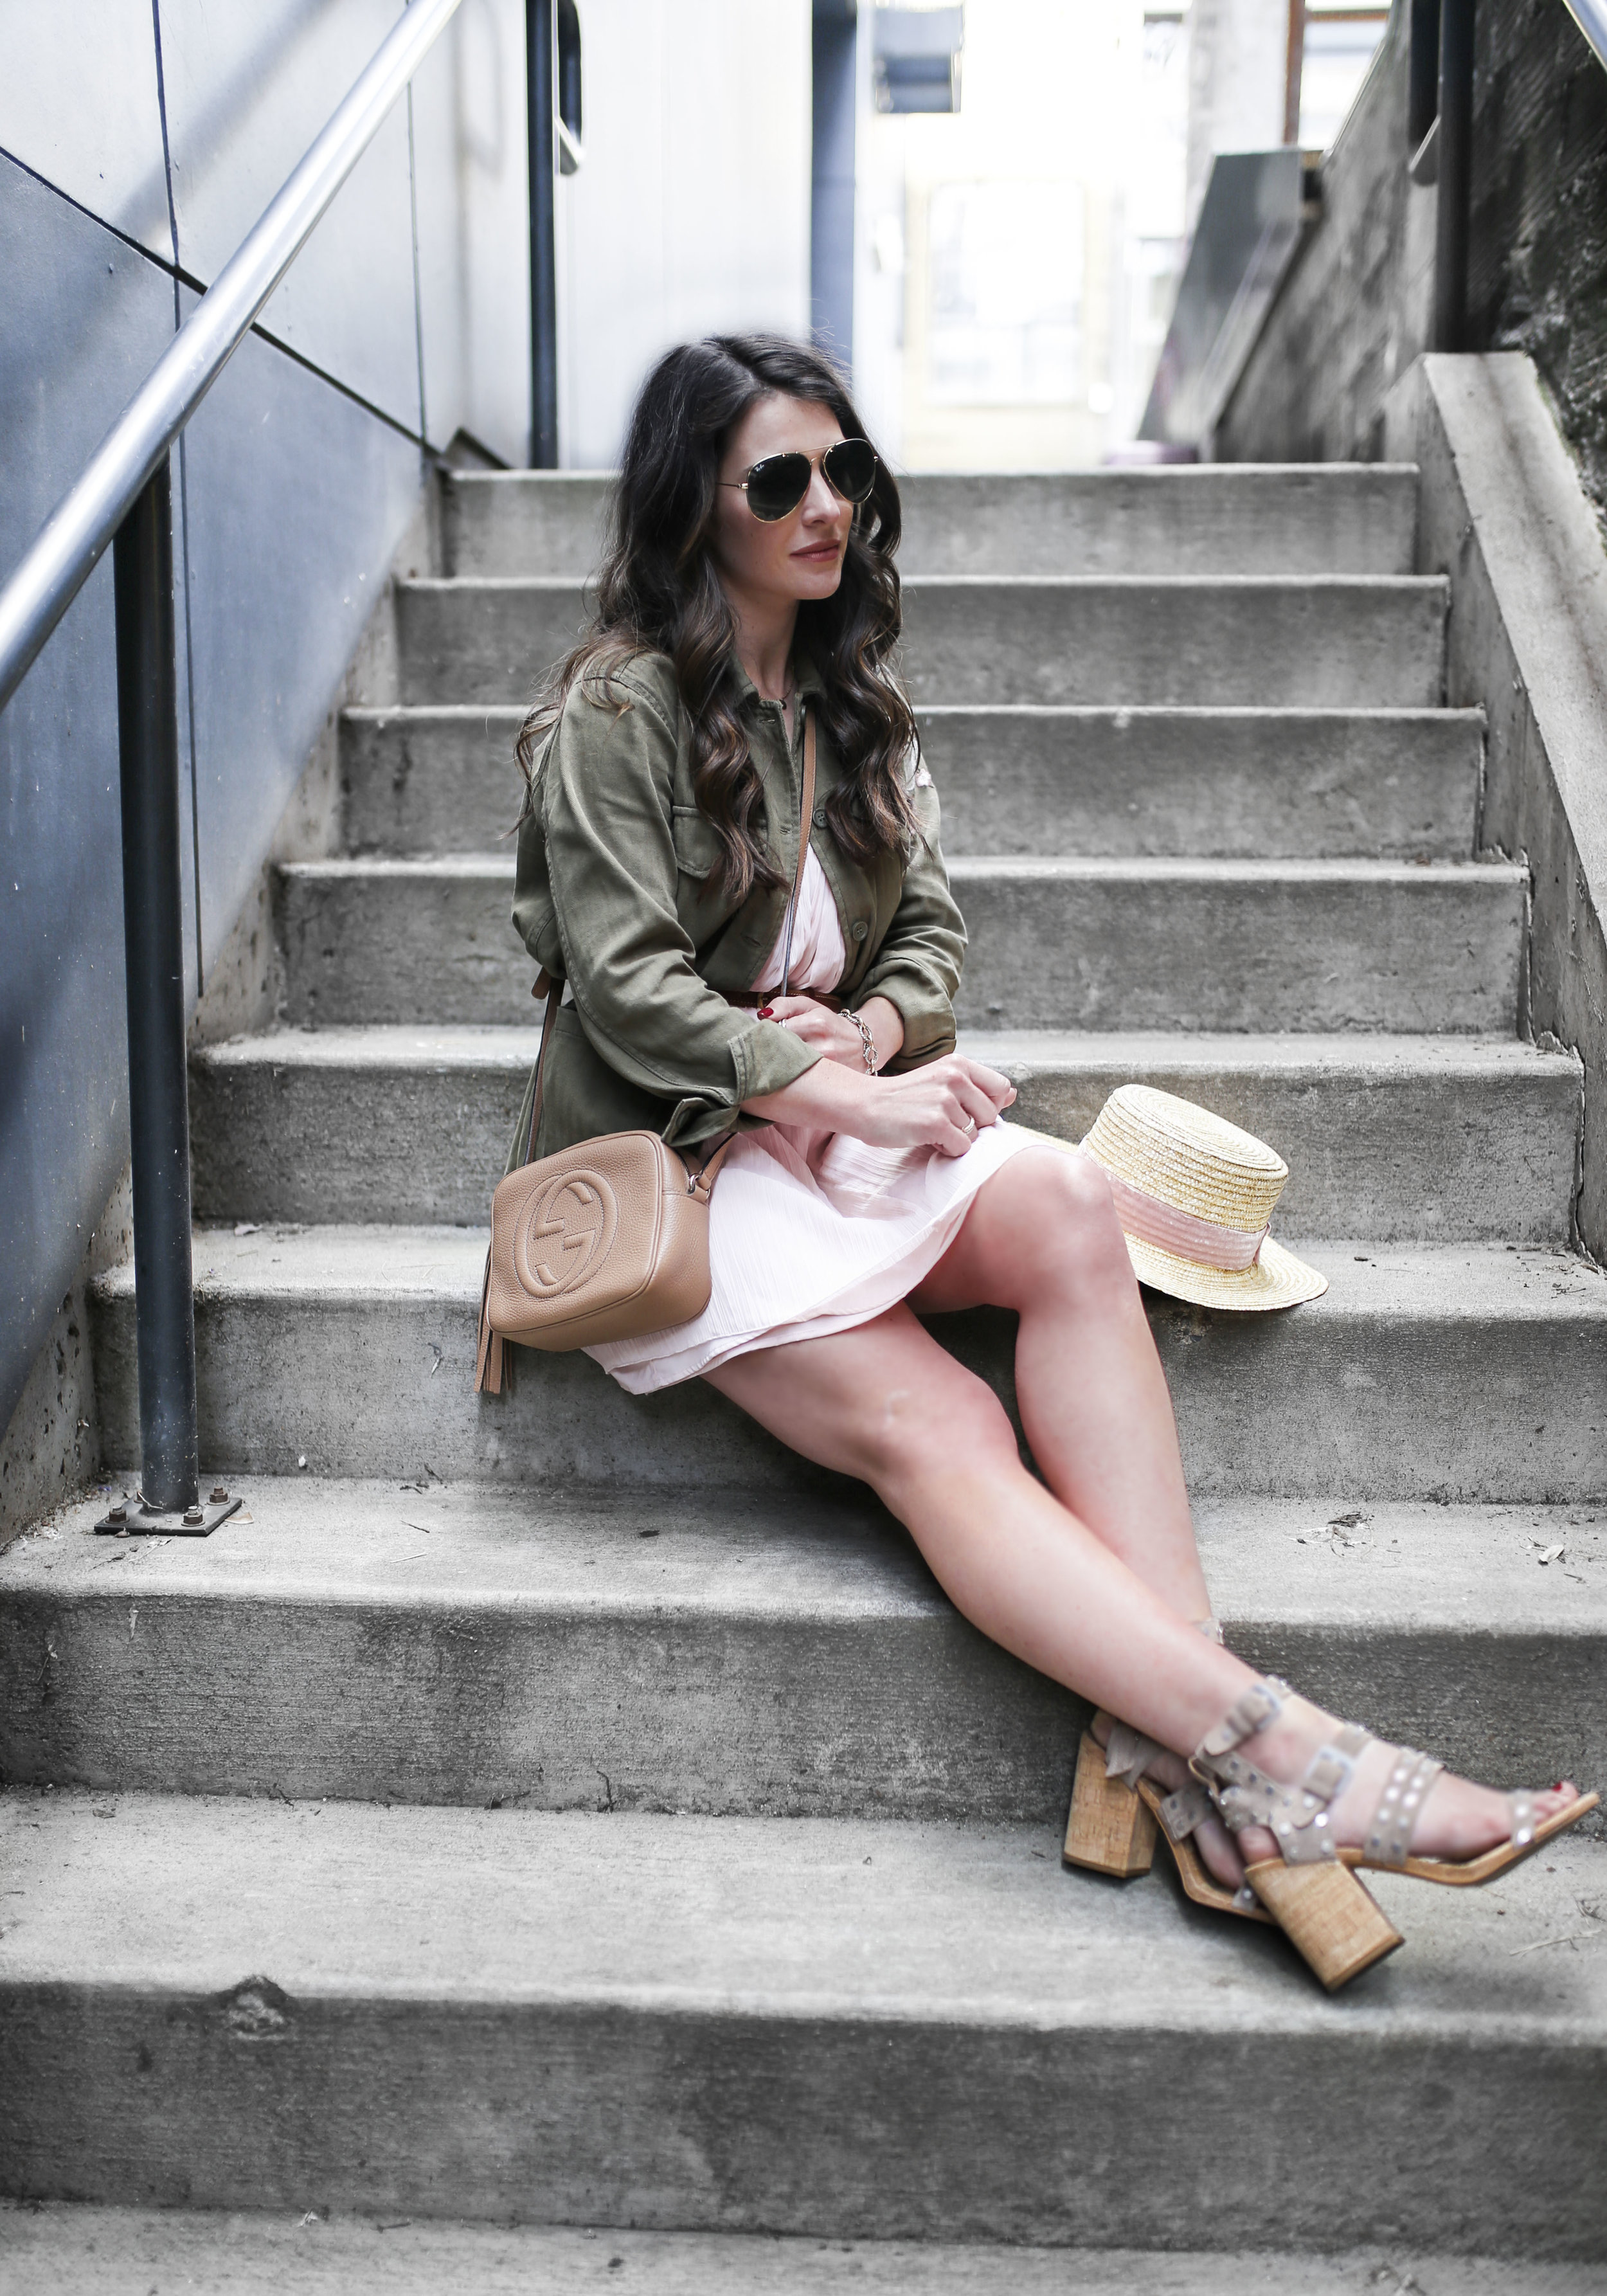 Embroidery trend summer 2017.  Topshop army shirt jacket with floral embroidery, Abercrombie & Fitch swing dress in blush, Gucci soho disco bag rose beige, Dolce Vita Effie sandals, Lack of Color boater hat, and ray-ban aviator sunglasses.  Summer dress with jacket belted.